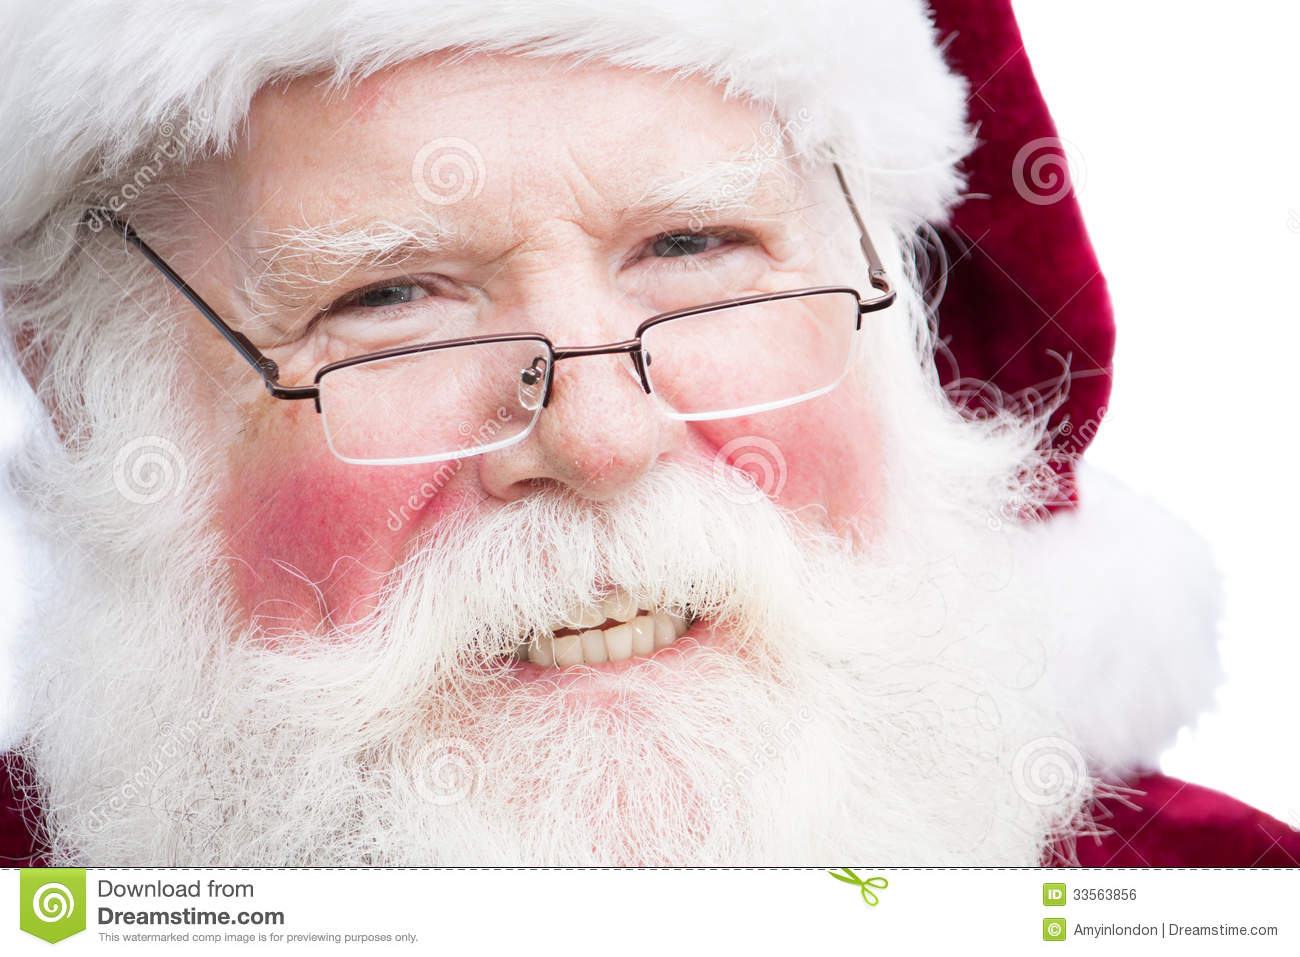 Christmas Santa Claus With Specs Royalty Free Stock Image - Image ...